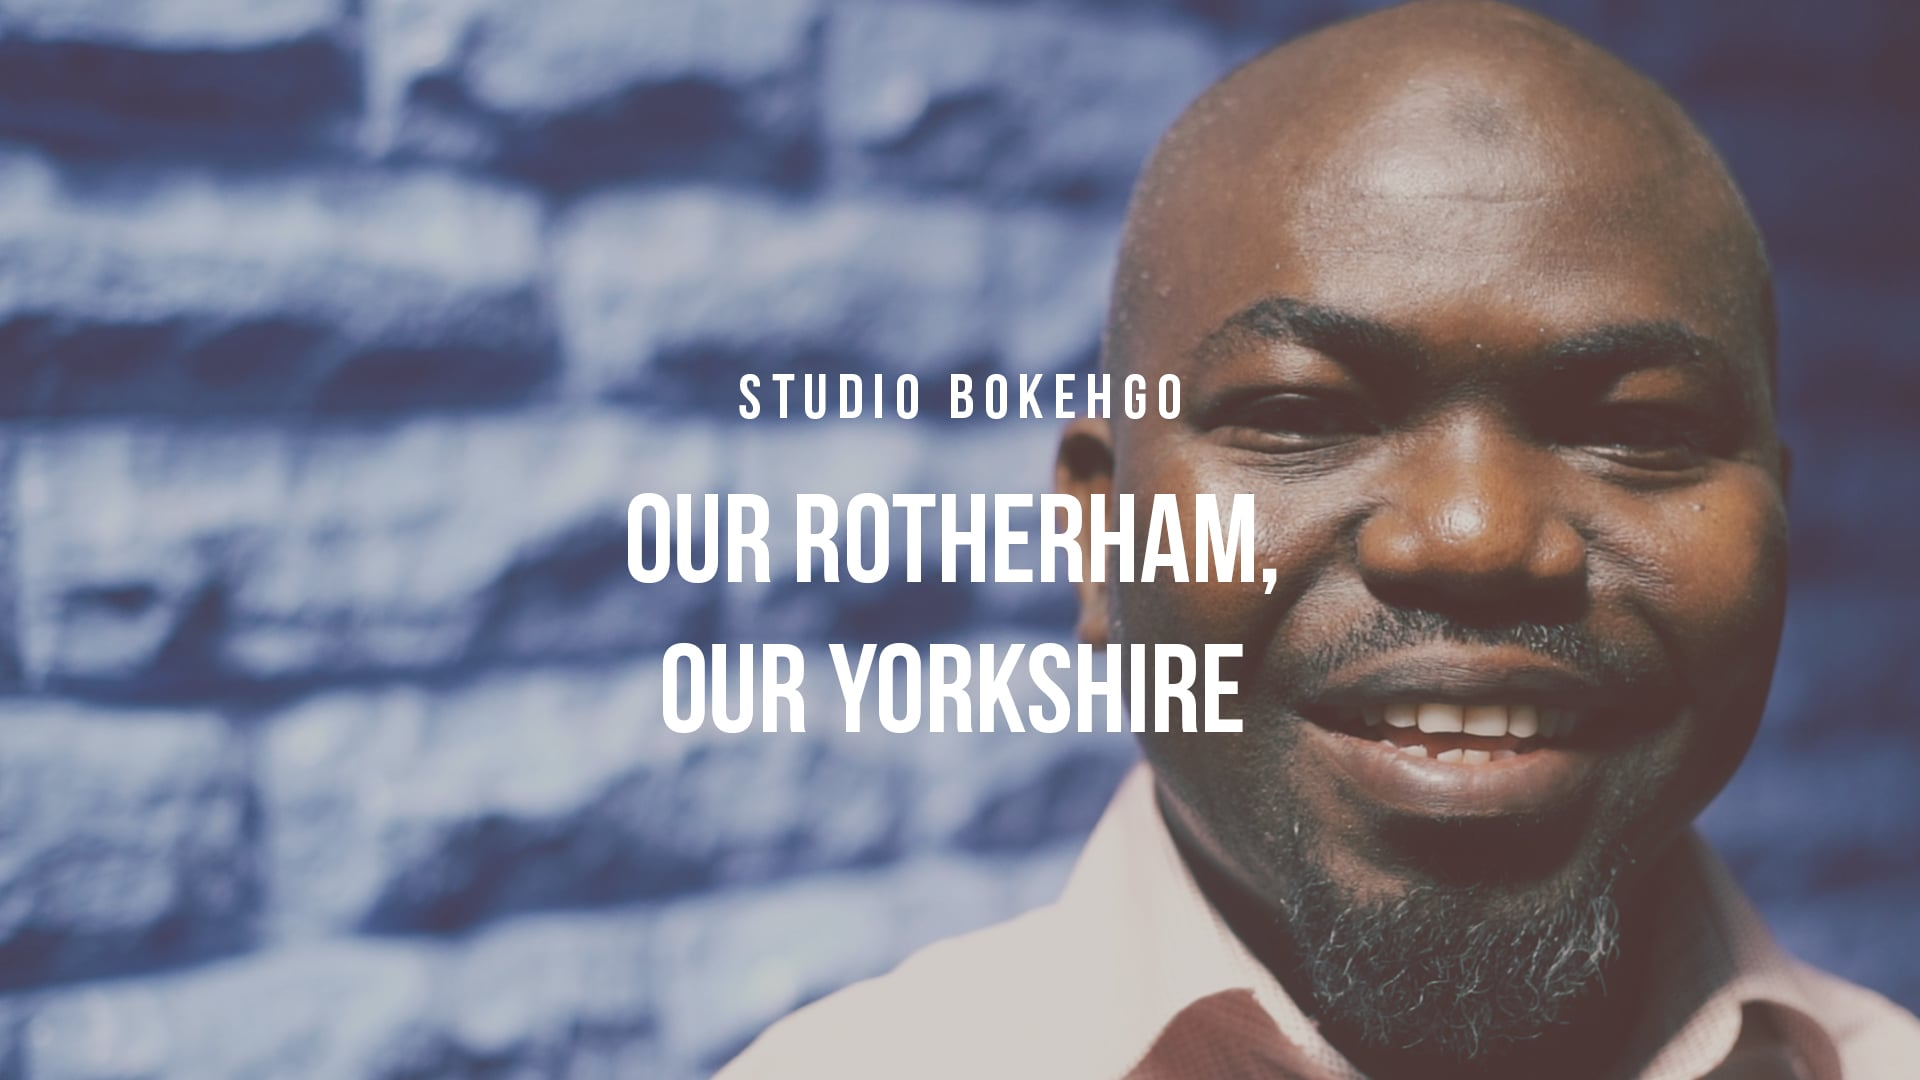 Our Rotherham, Our Yorkshire - Official Release Film - Studio Bokehgo